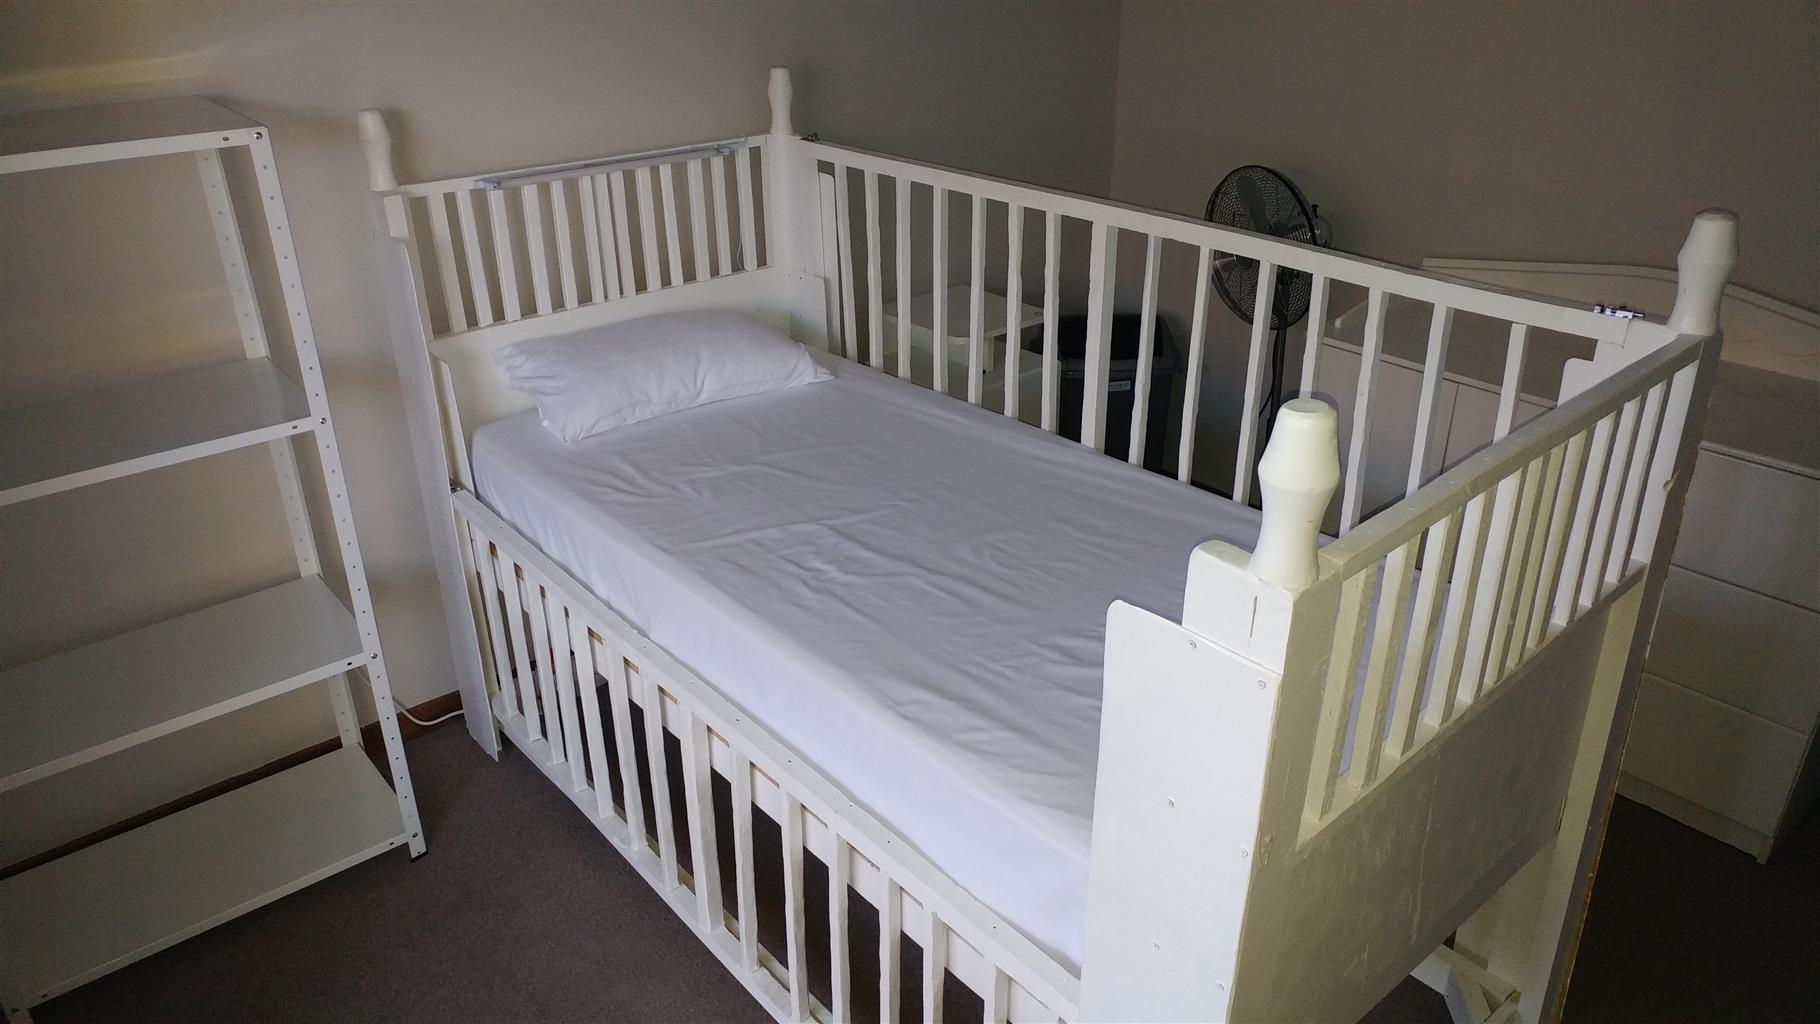 Homemade Adult cot / bed